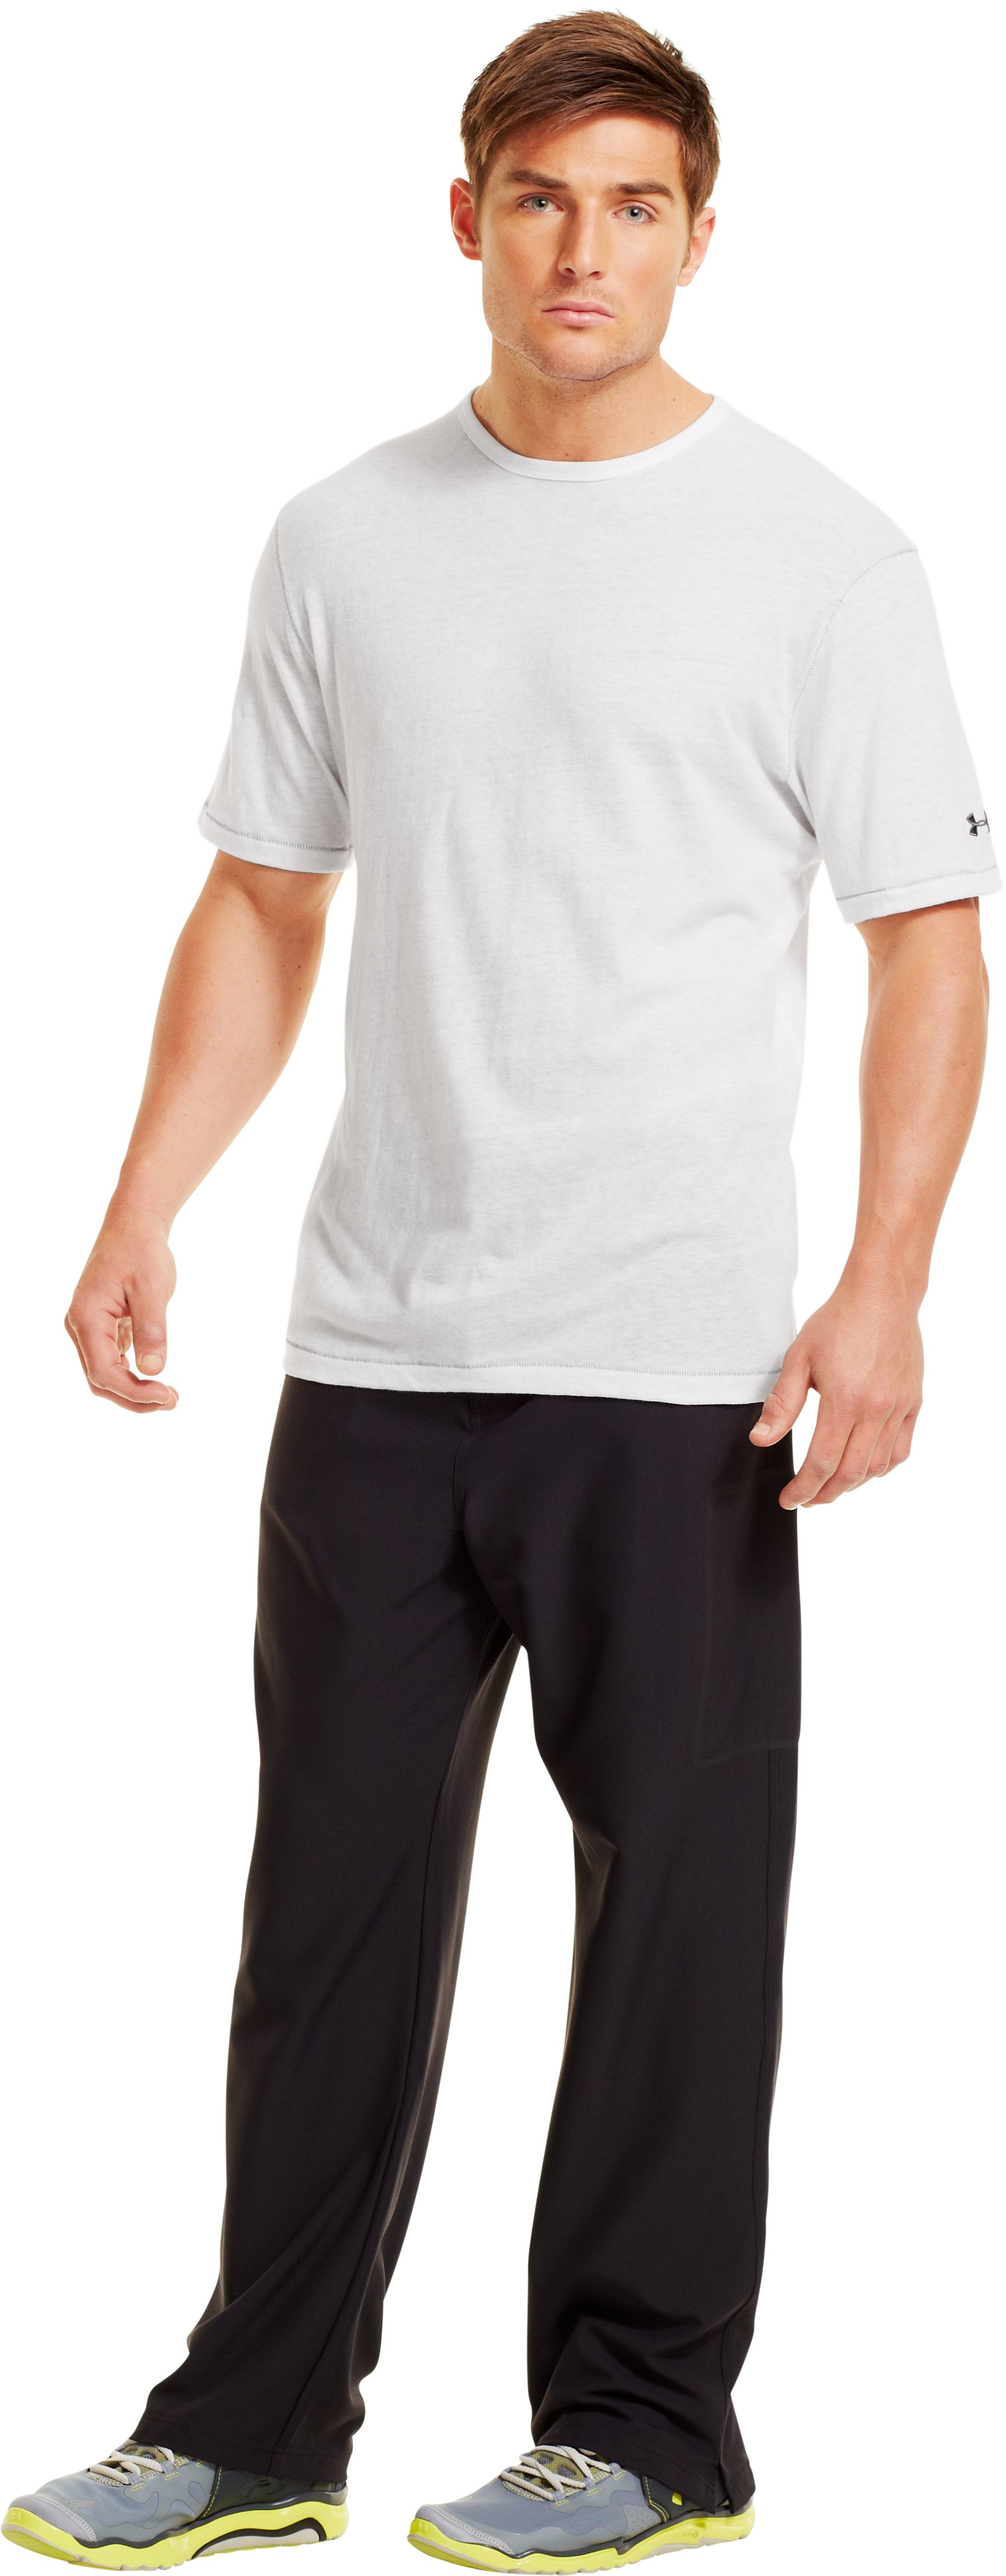 Men's Charged Cotton® Tri-Blend T-Shirt, White, Front